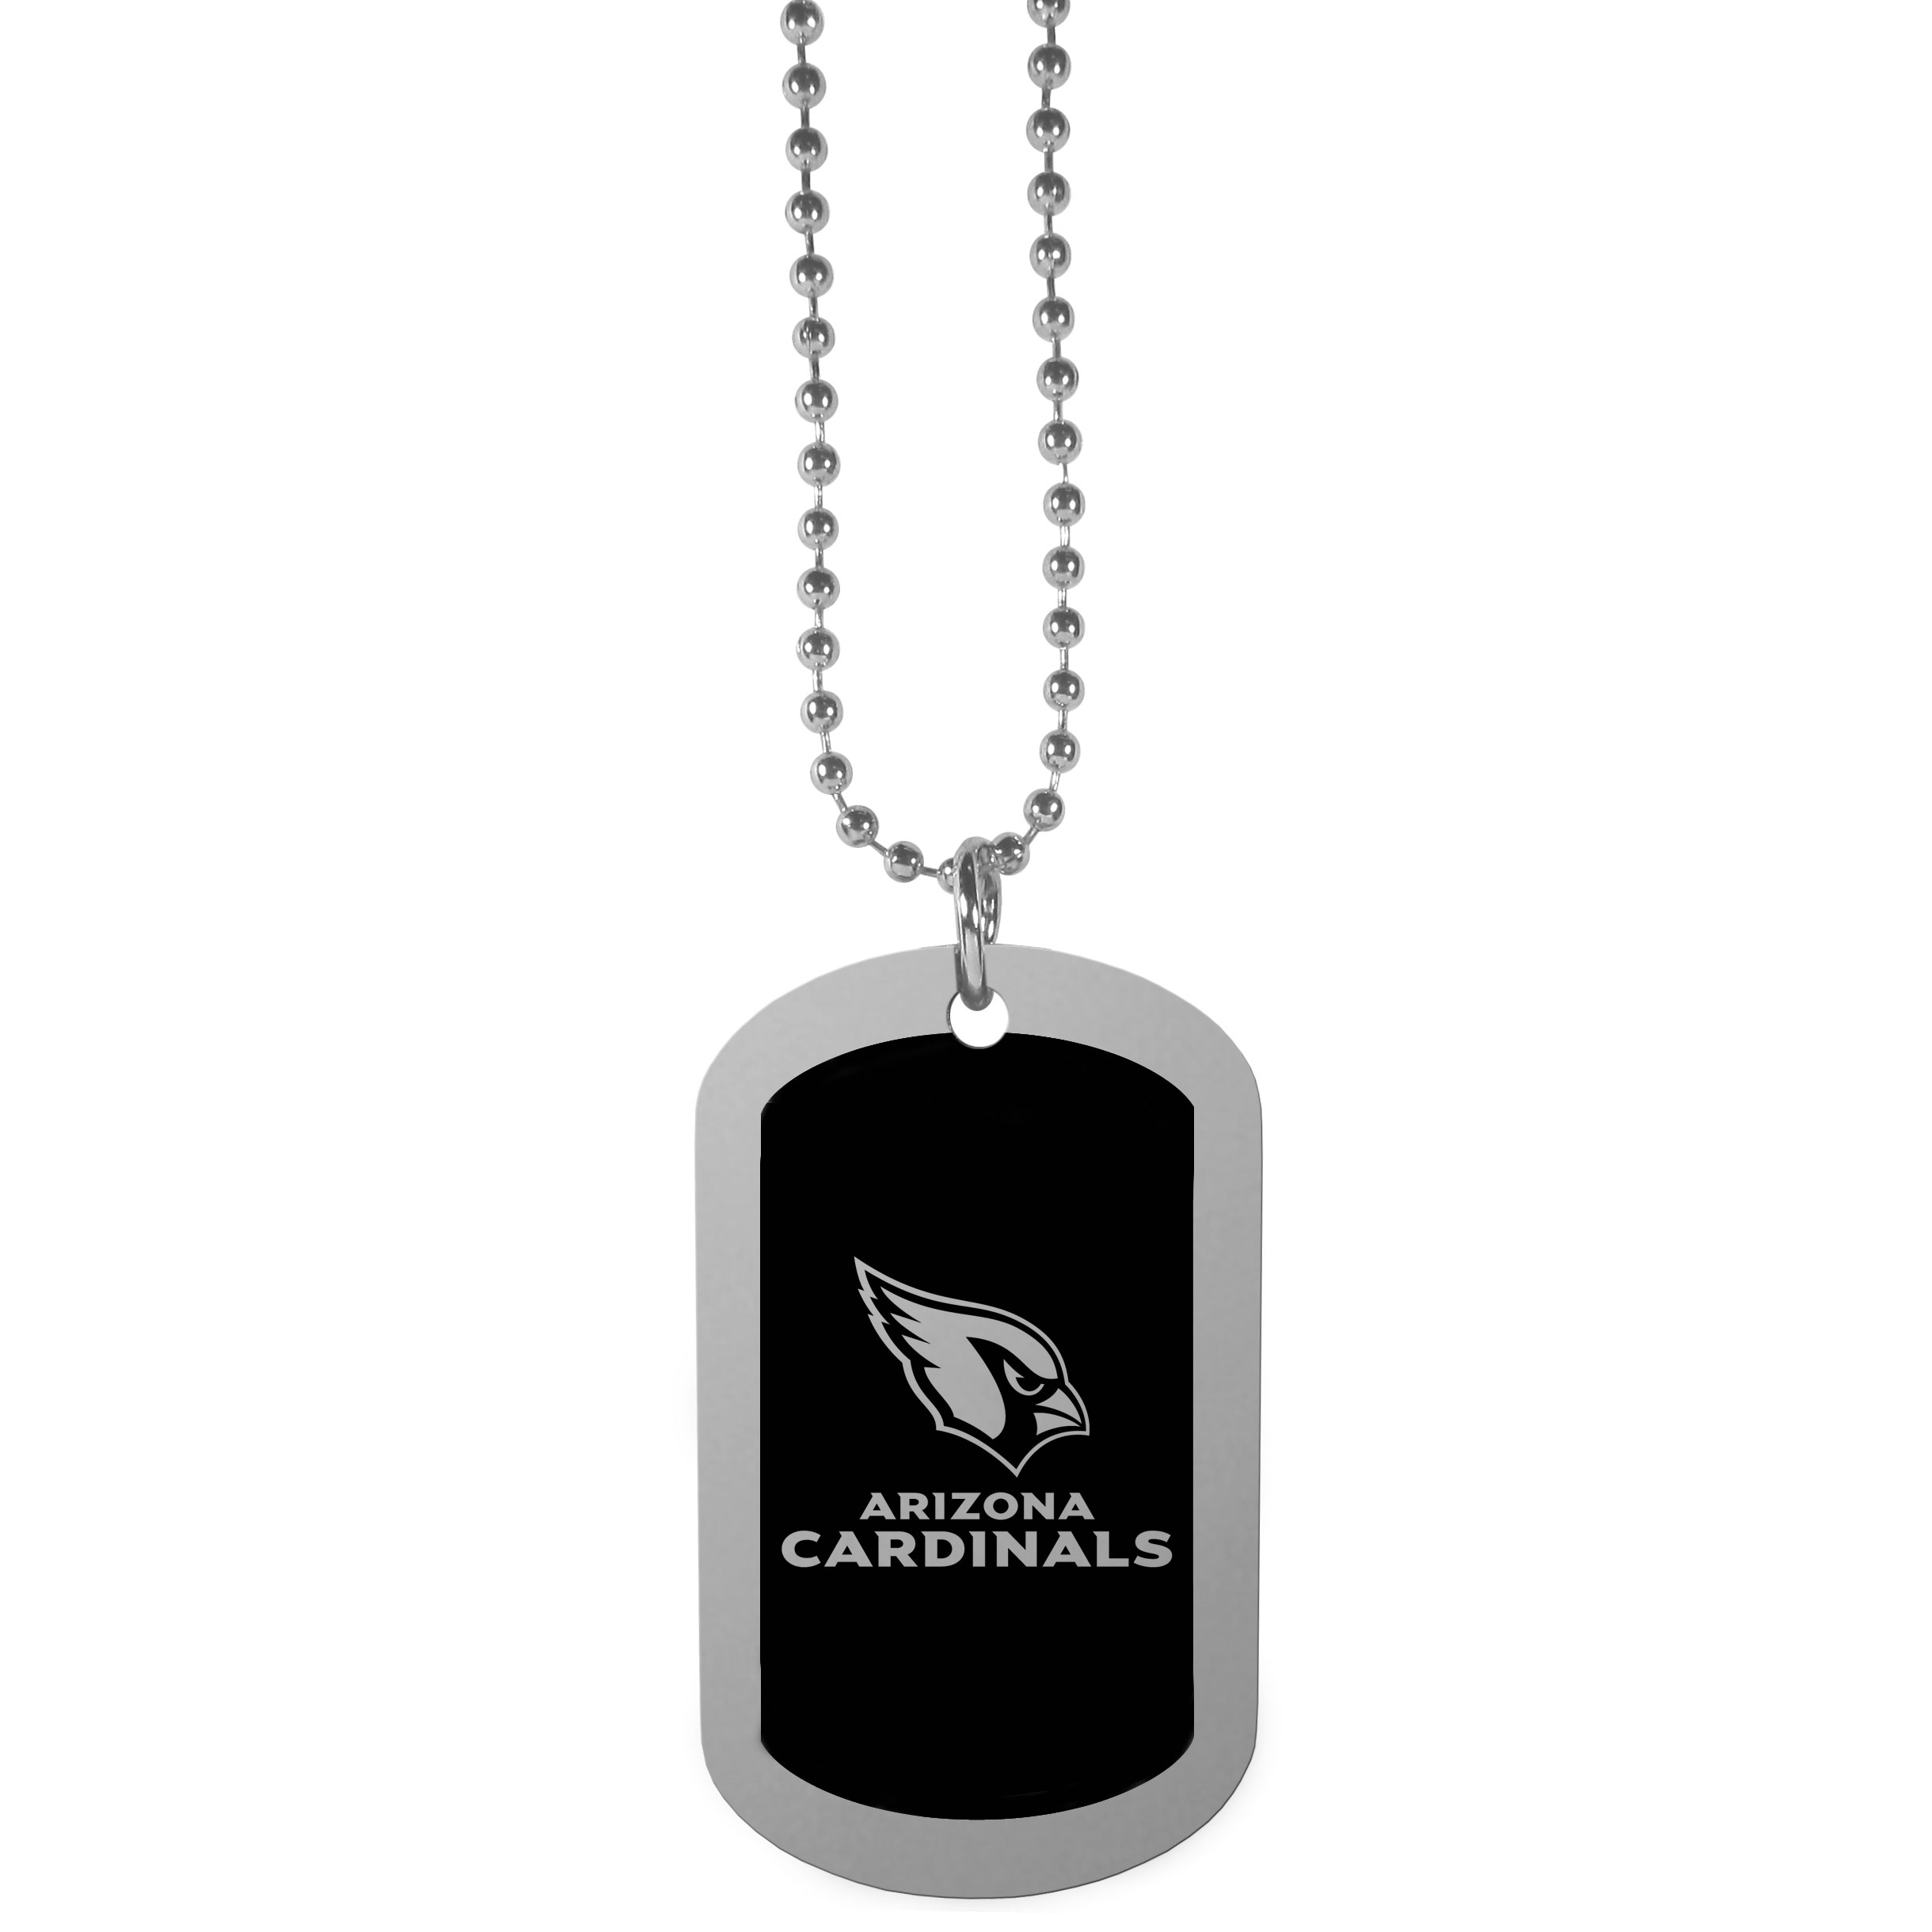 Arizona Cardinals Chrome Tag Necklace - Dog tag necklaces are a fashion statement that is here to stay. The sporty version of the classic tag features a black printed over a high polish tag to create a bold and sporty look. The tag comes on a 26 inch ball chain with a ball and joint clasp. Any Arizona Cardinals would be proud to wear this attractive fashion accessory.